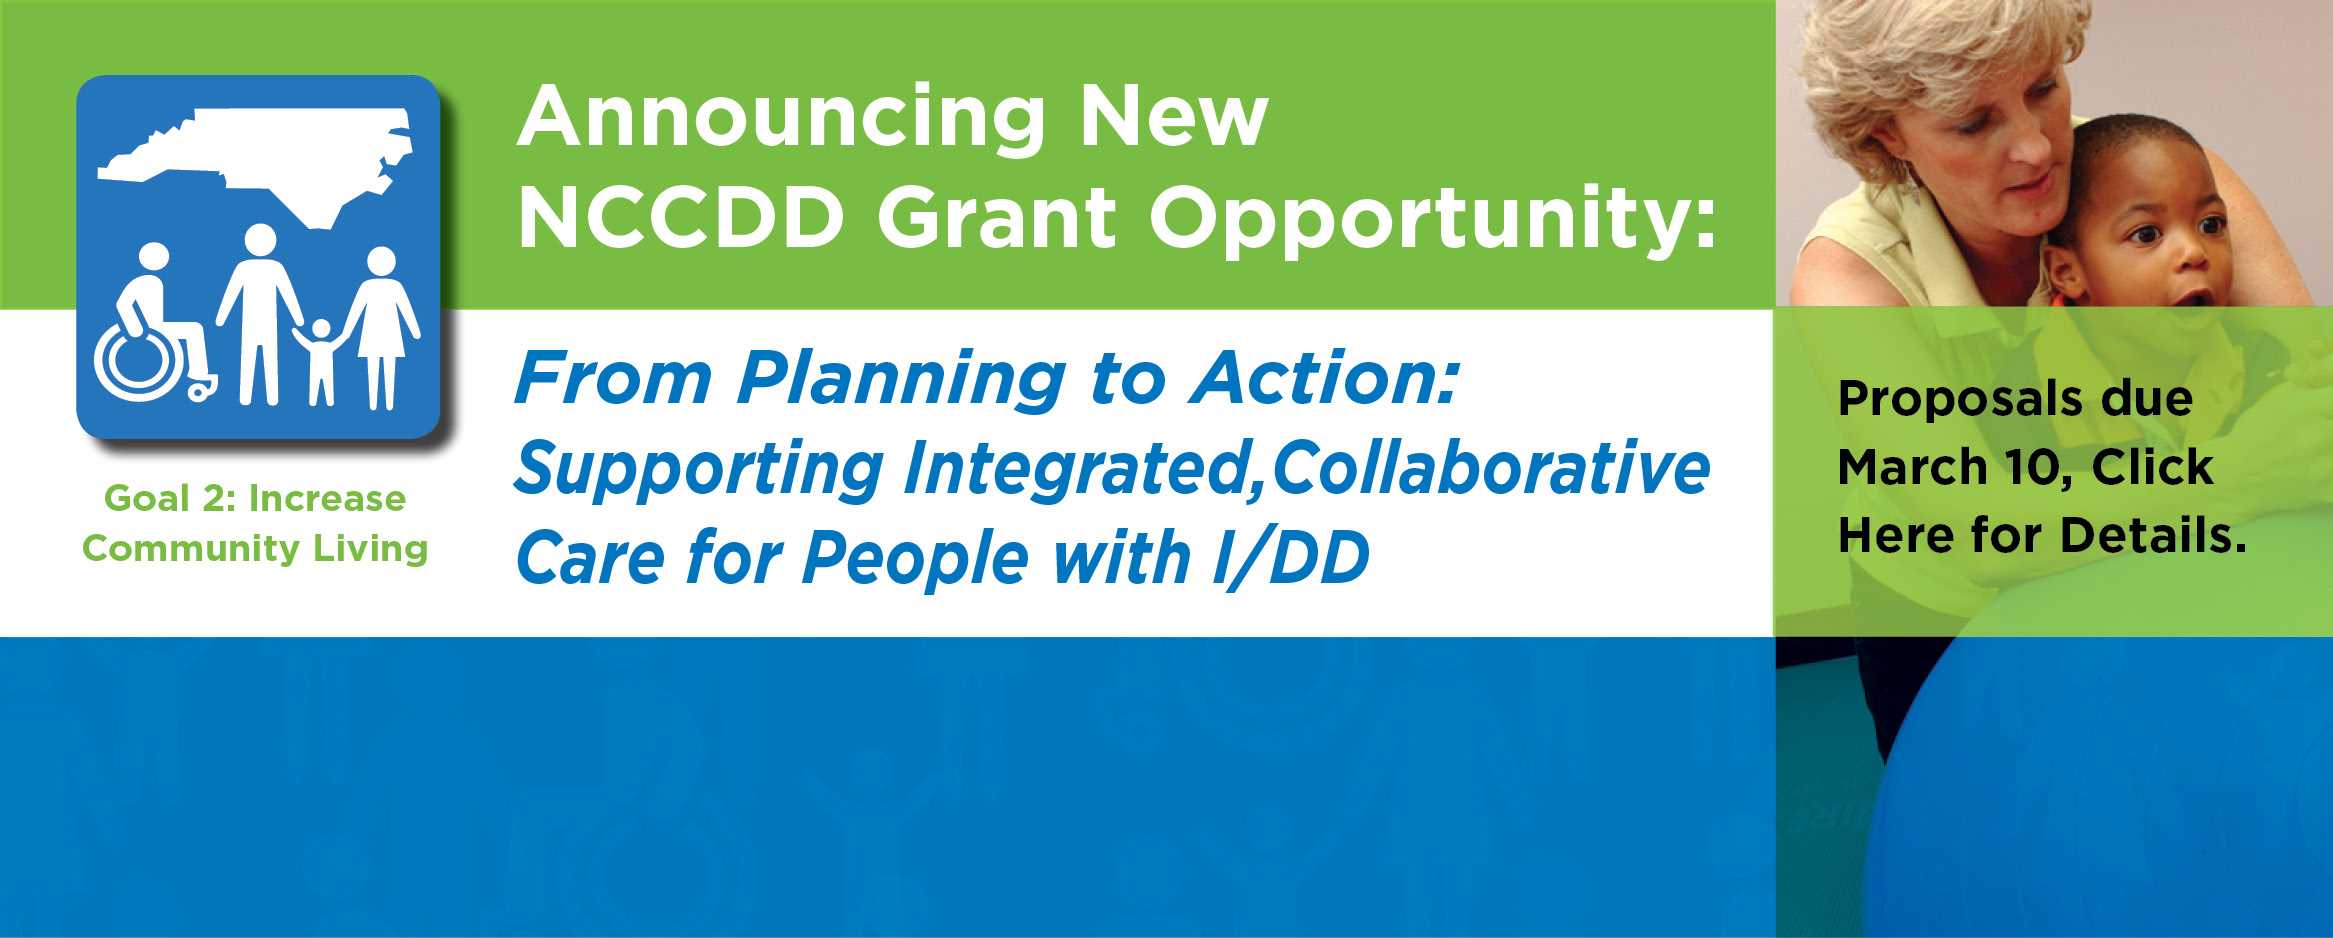 Announcing New NCCDD Grant Opportunity: From Planning to Action: Supporting Integrated, Collaborative Care for People with I/DD